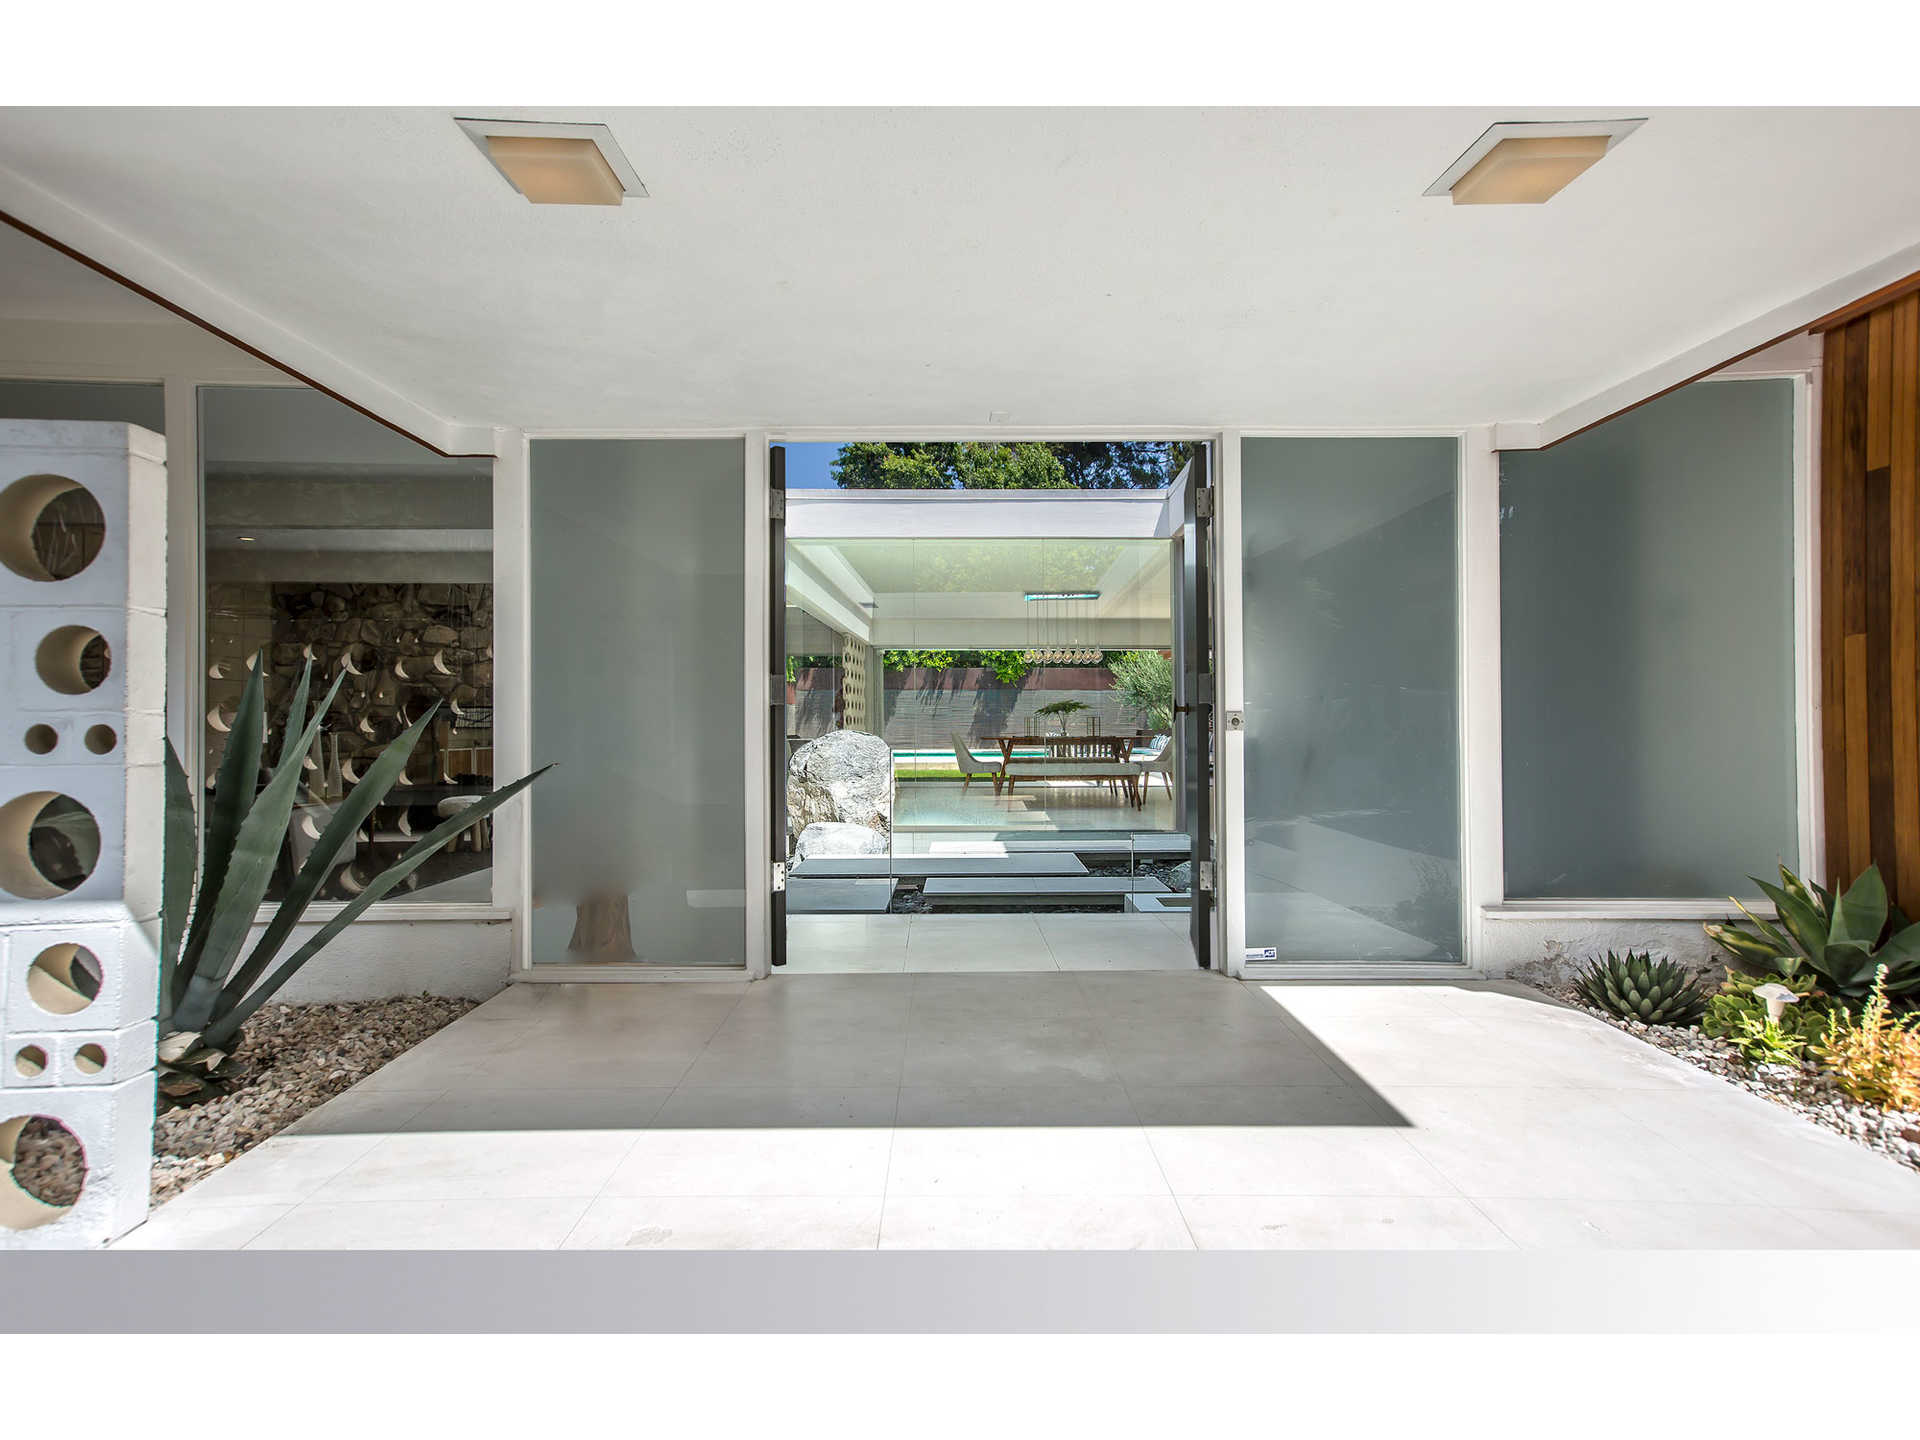 1959 midcentury home in Los Angeles - entrance